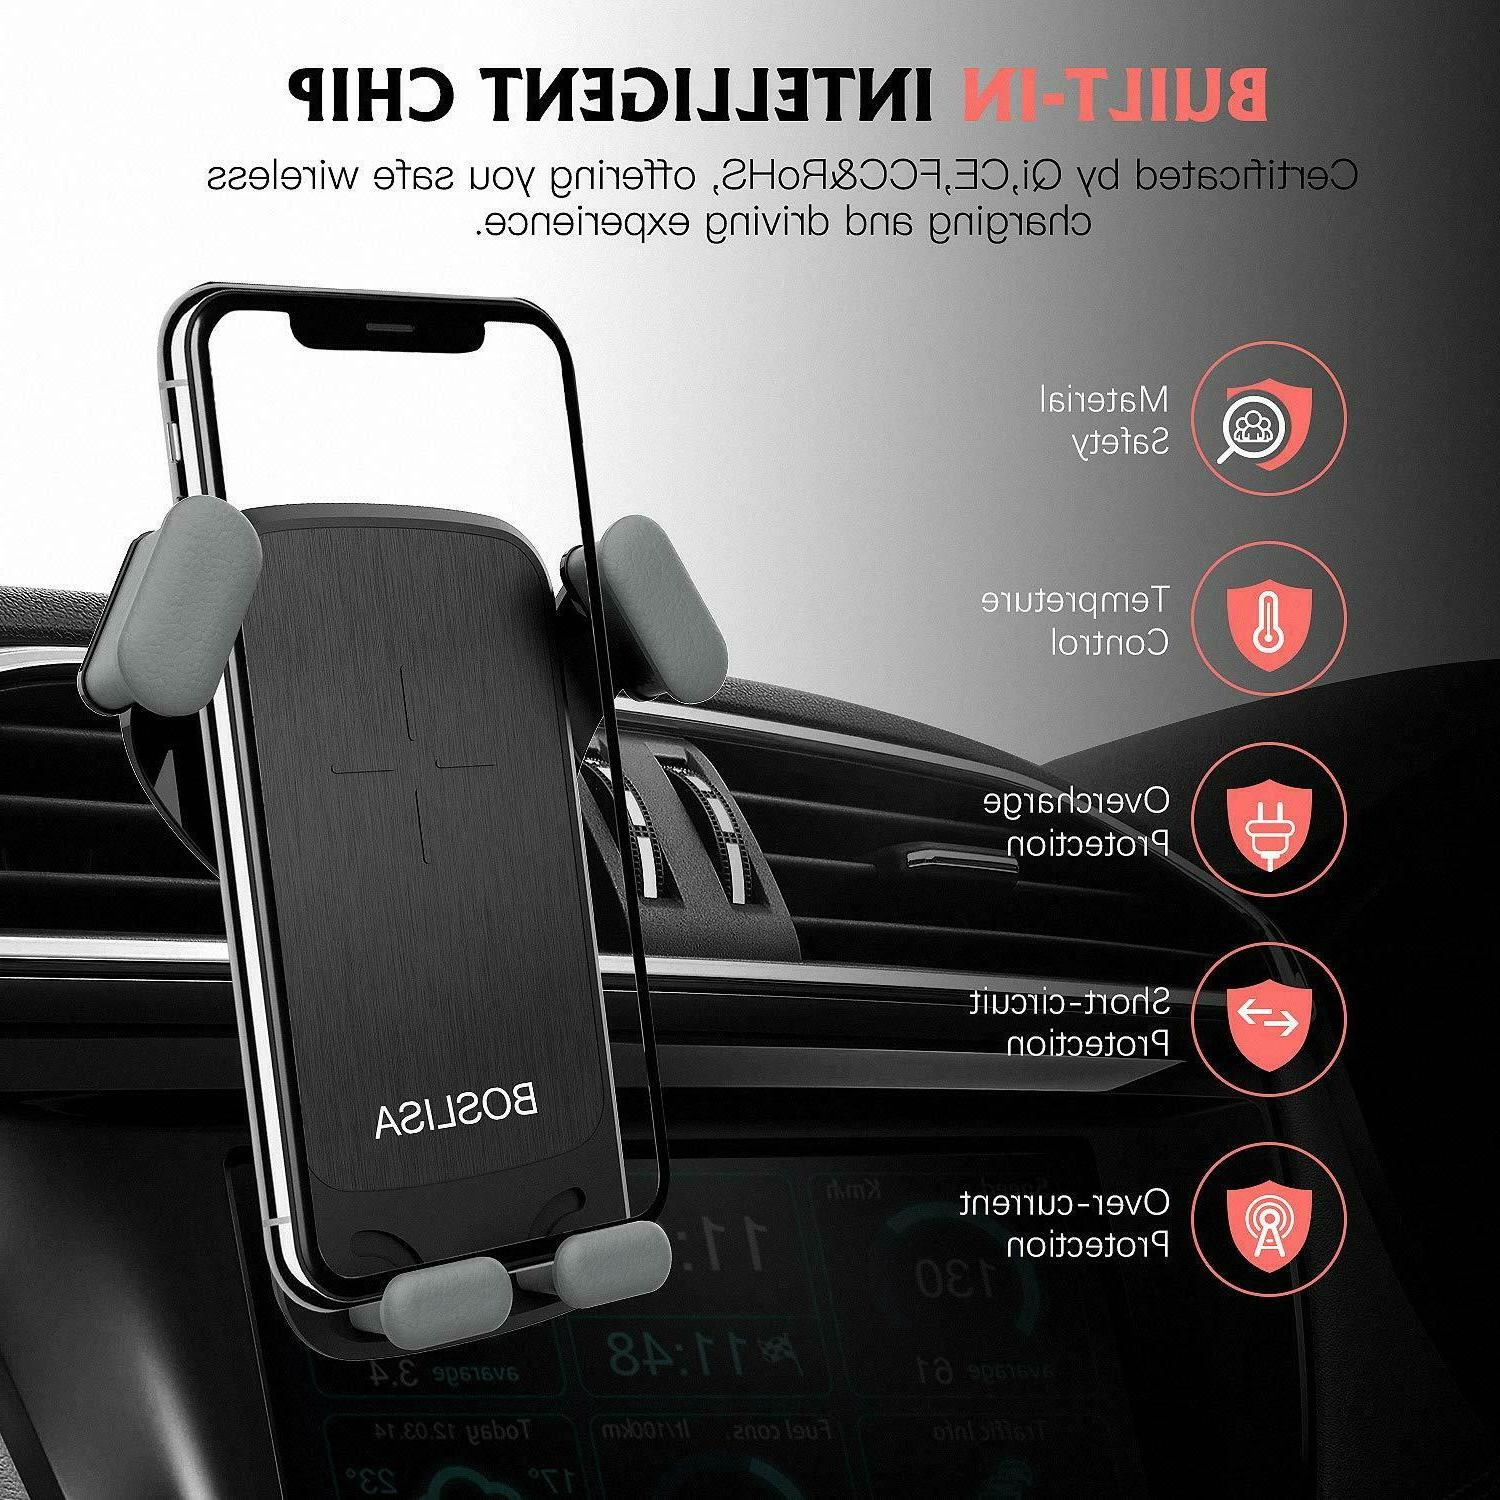 QI Car Charger iPhone 8 Samsung S8 S9+ S7